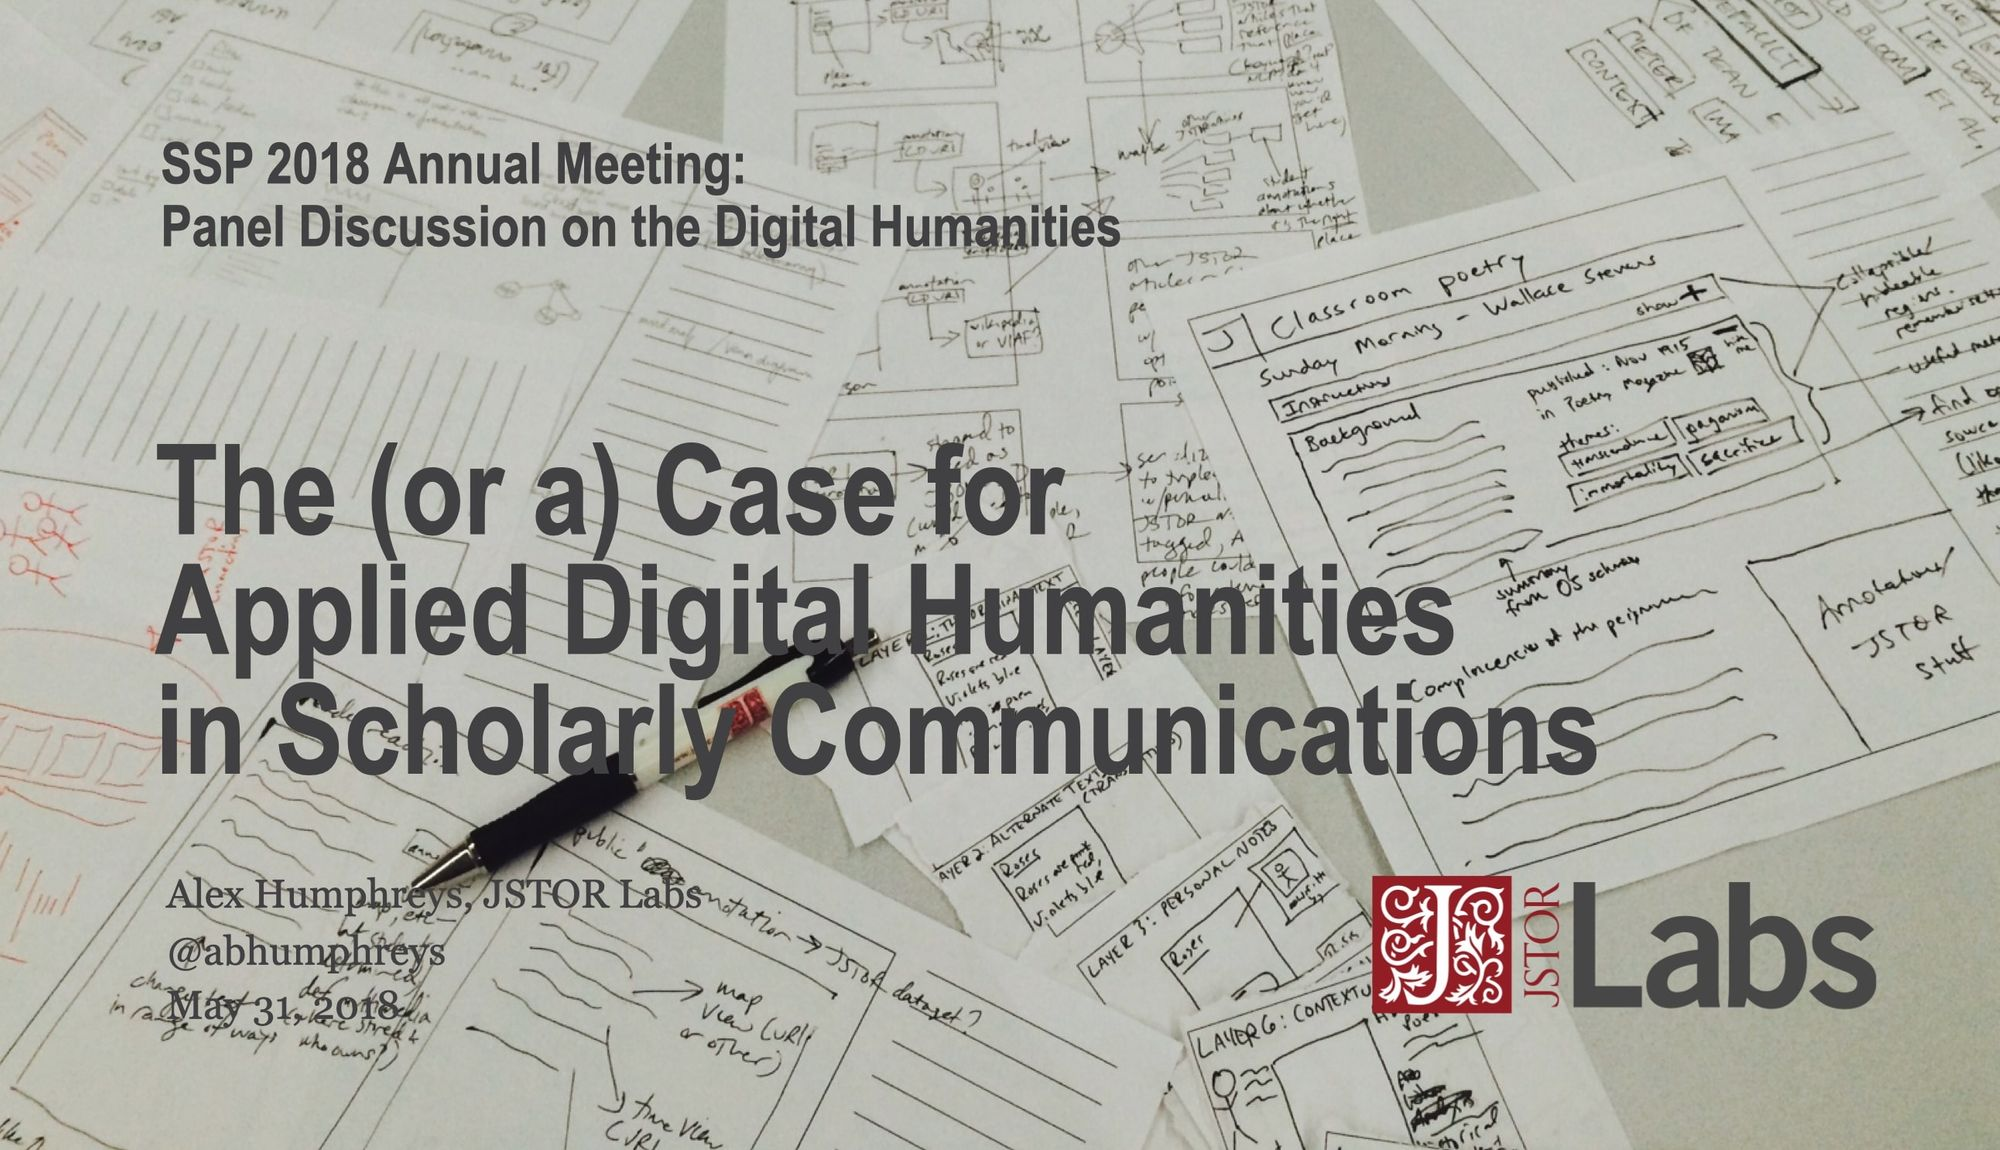 The Case for Applied Digital Humanities in Scholarly Communications